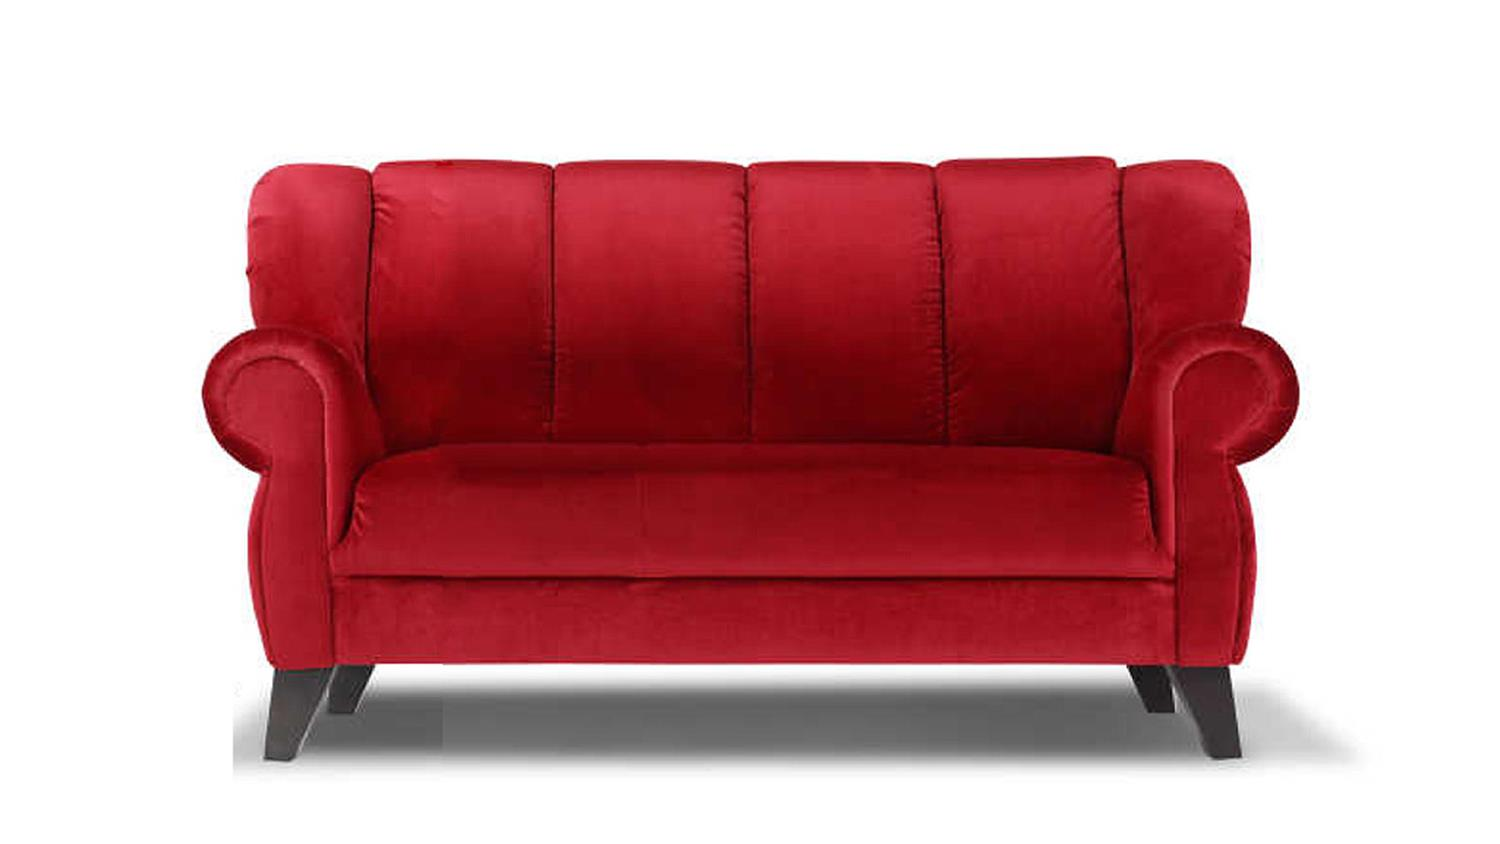 speisesofa dinner sofa 2 sitzer polsterm bel rot kolonial. Black Bedroom Furniture Sets. Home Design Ideas